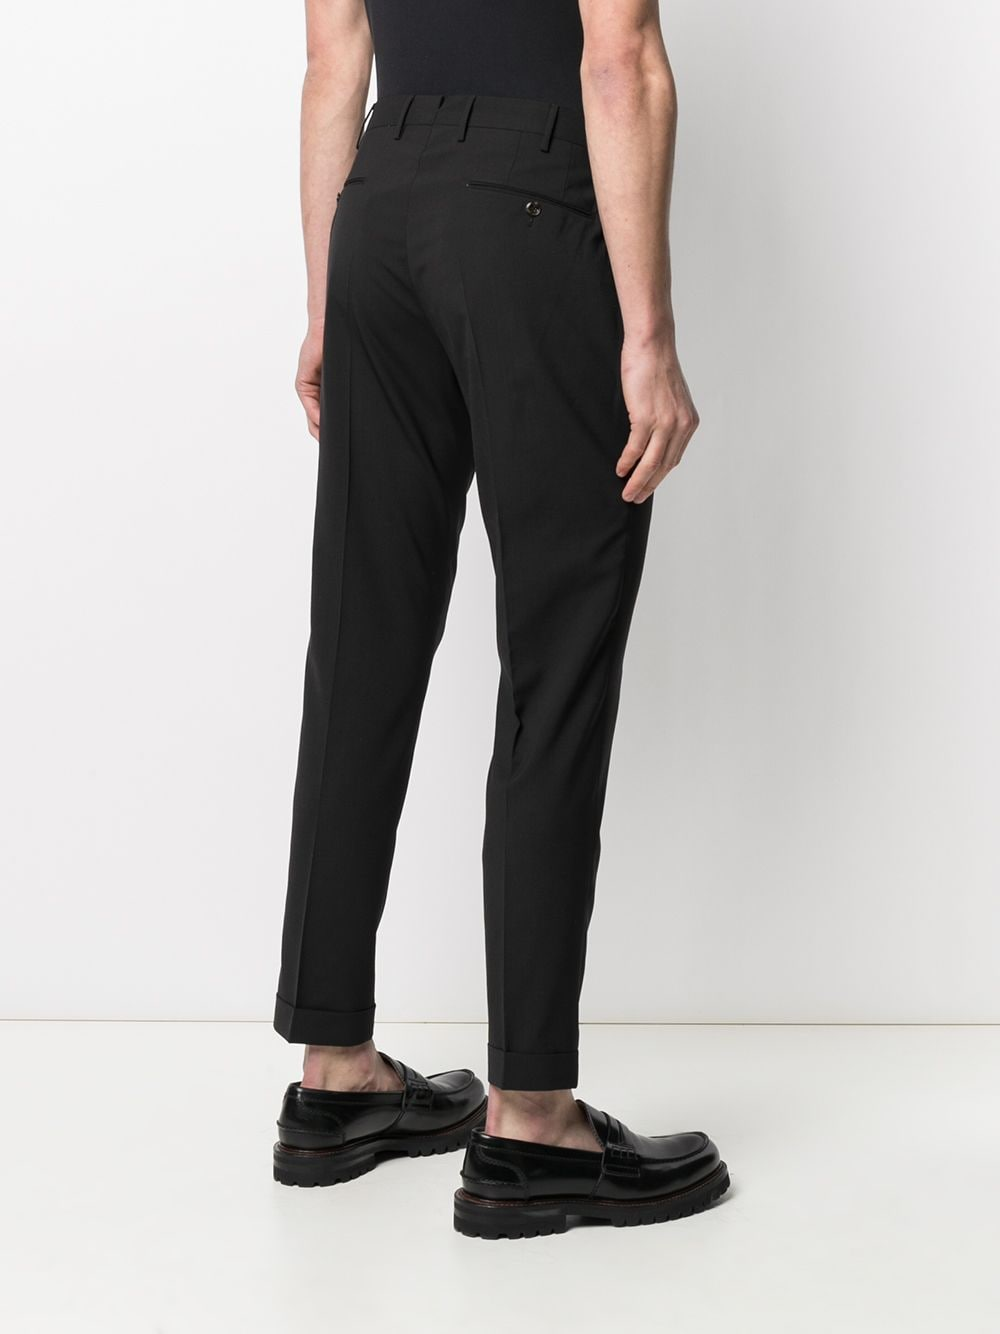 Black virgin wool tailored-cut chinos featuring stretch design PT01 |  | COHS22ZS0CUB-MZ650990